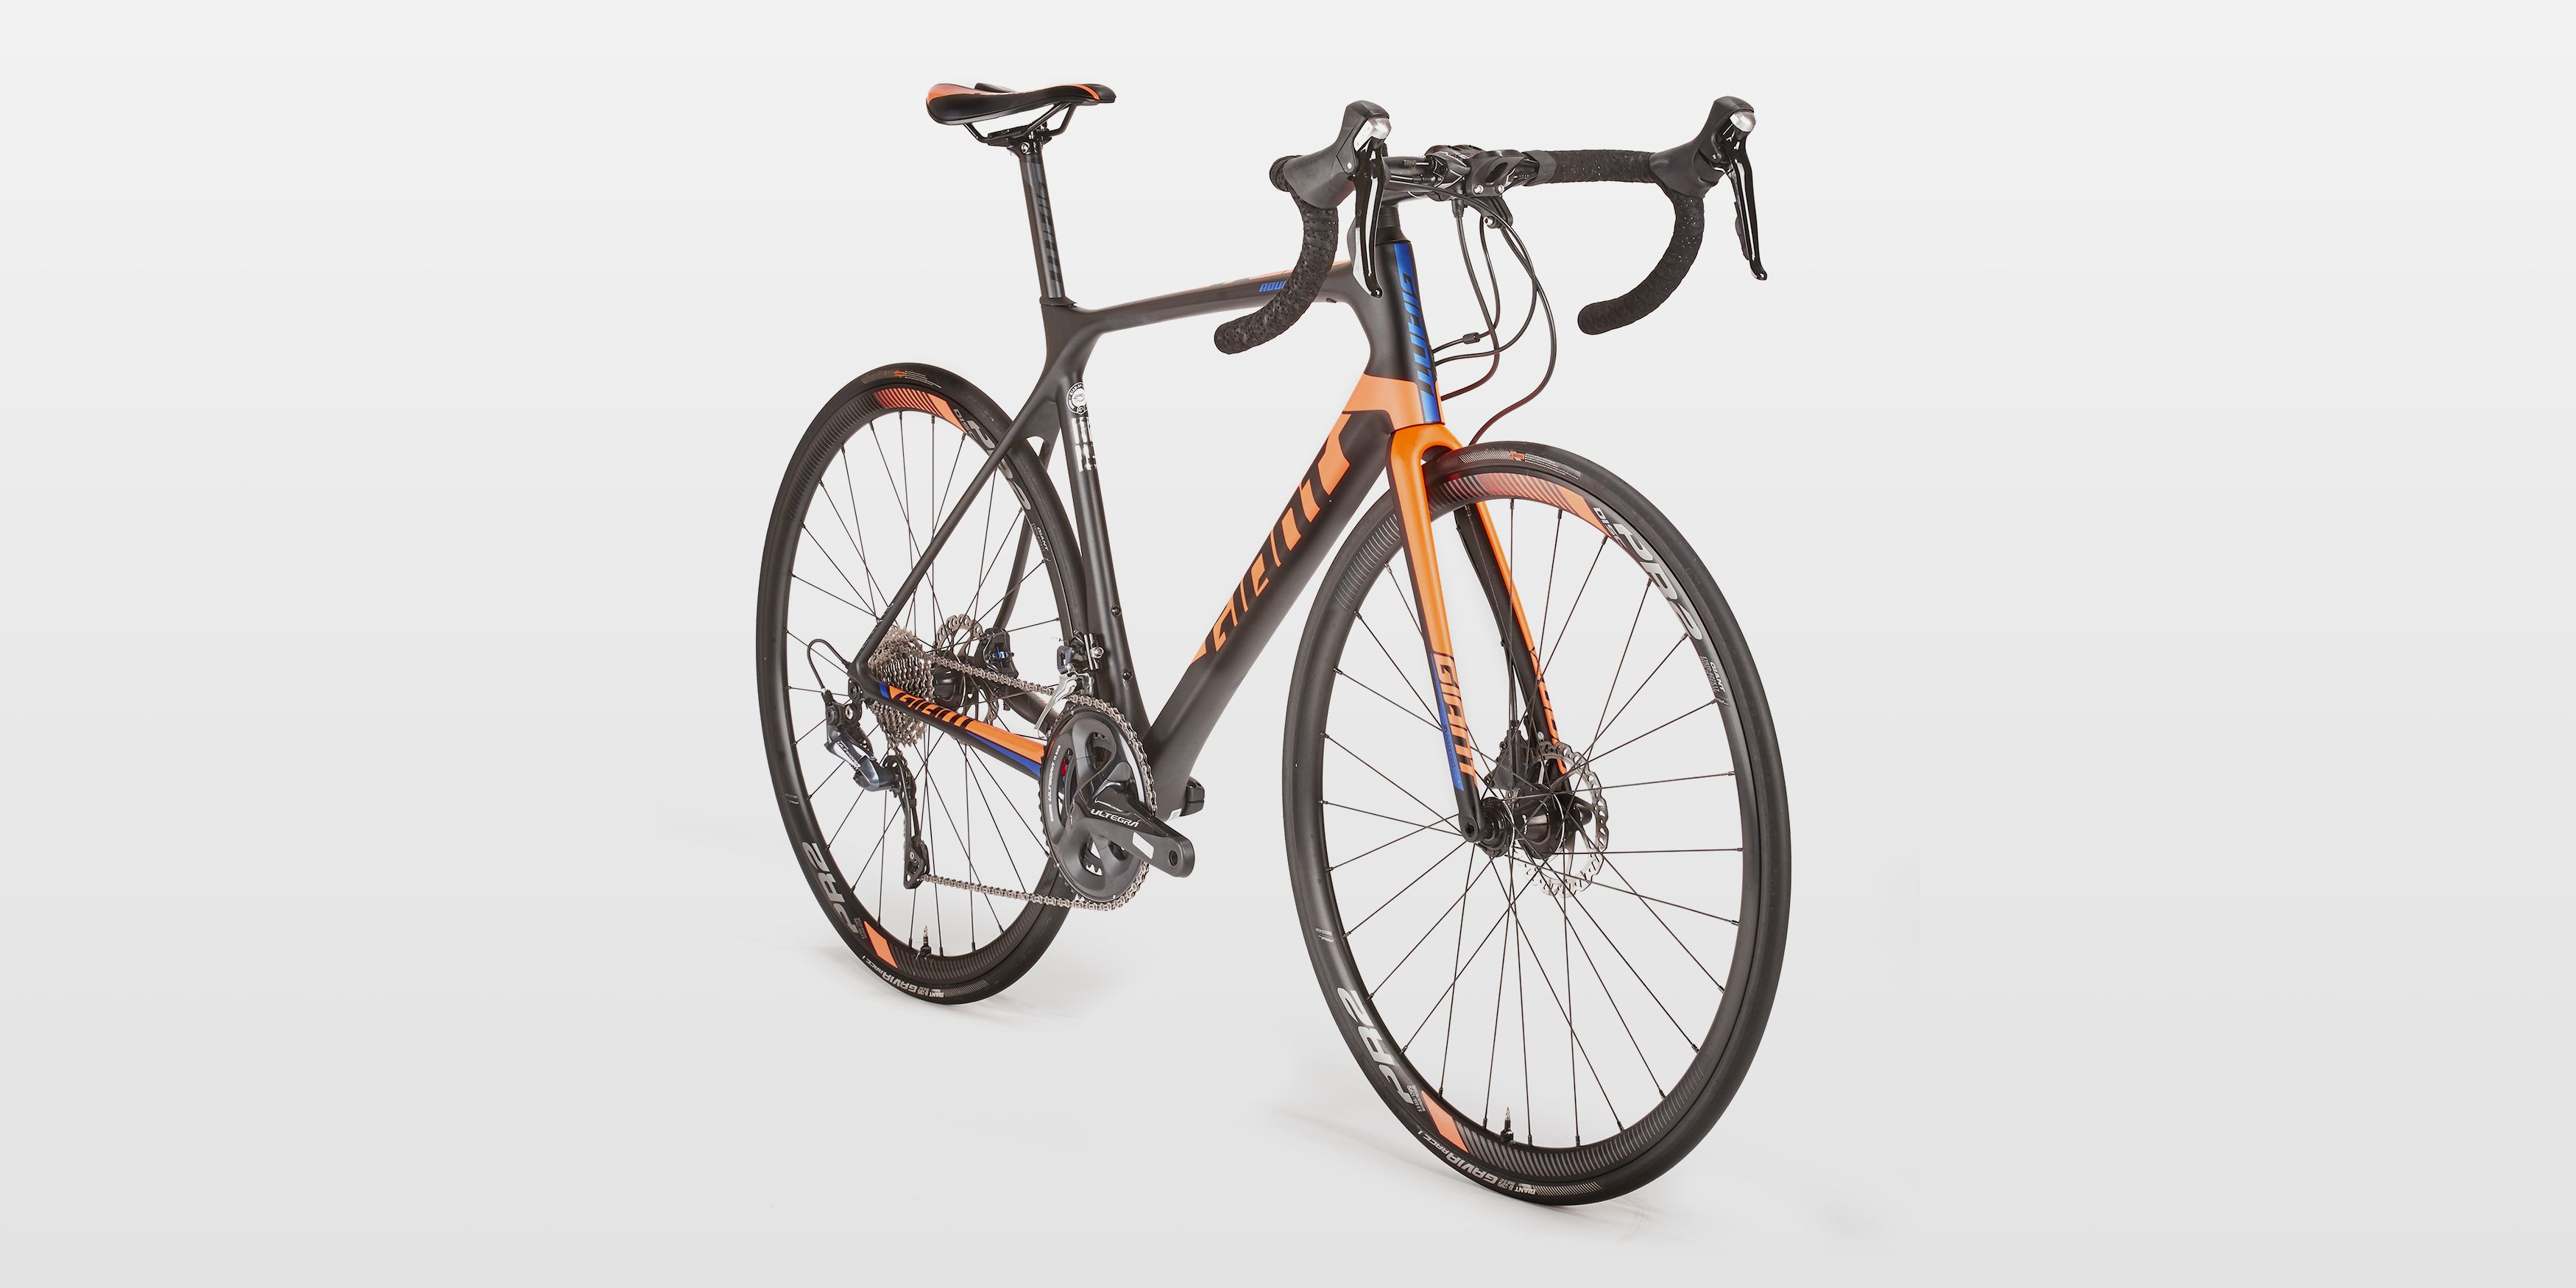 a111b6691c1 The Giant TCR Advanced 1 Disc-KOM - Best Road Bikes I Bicycling